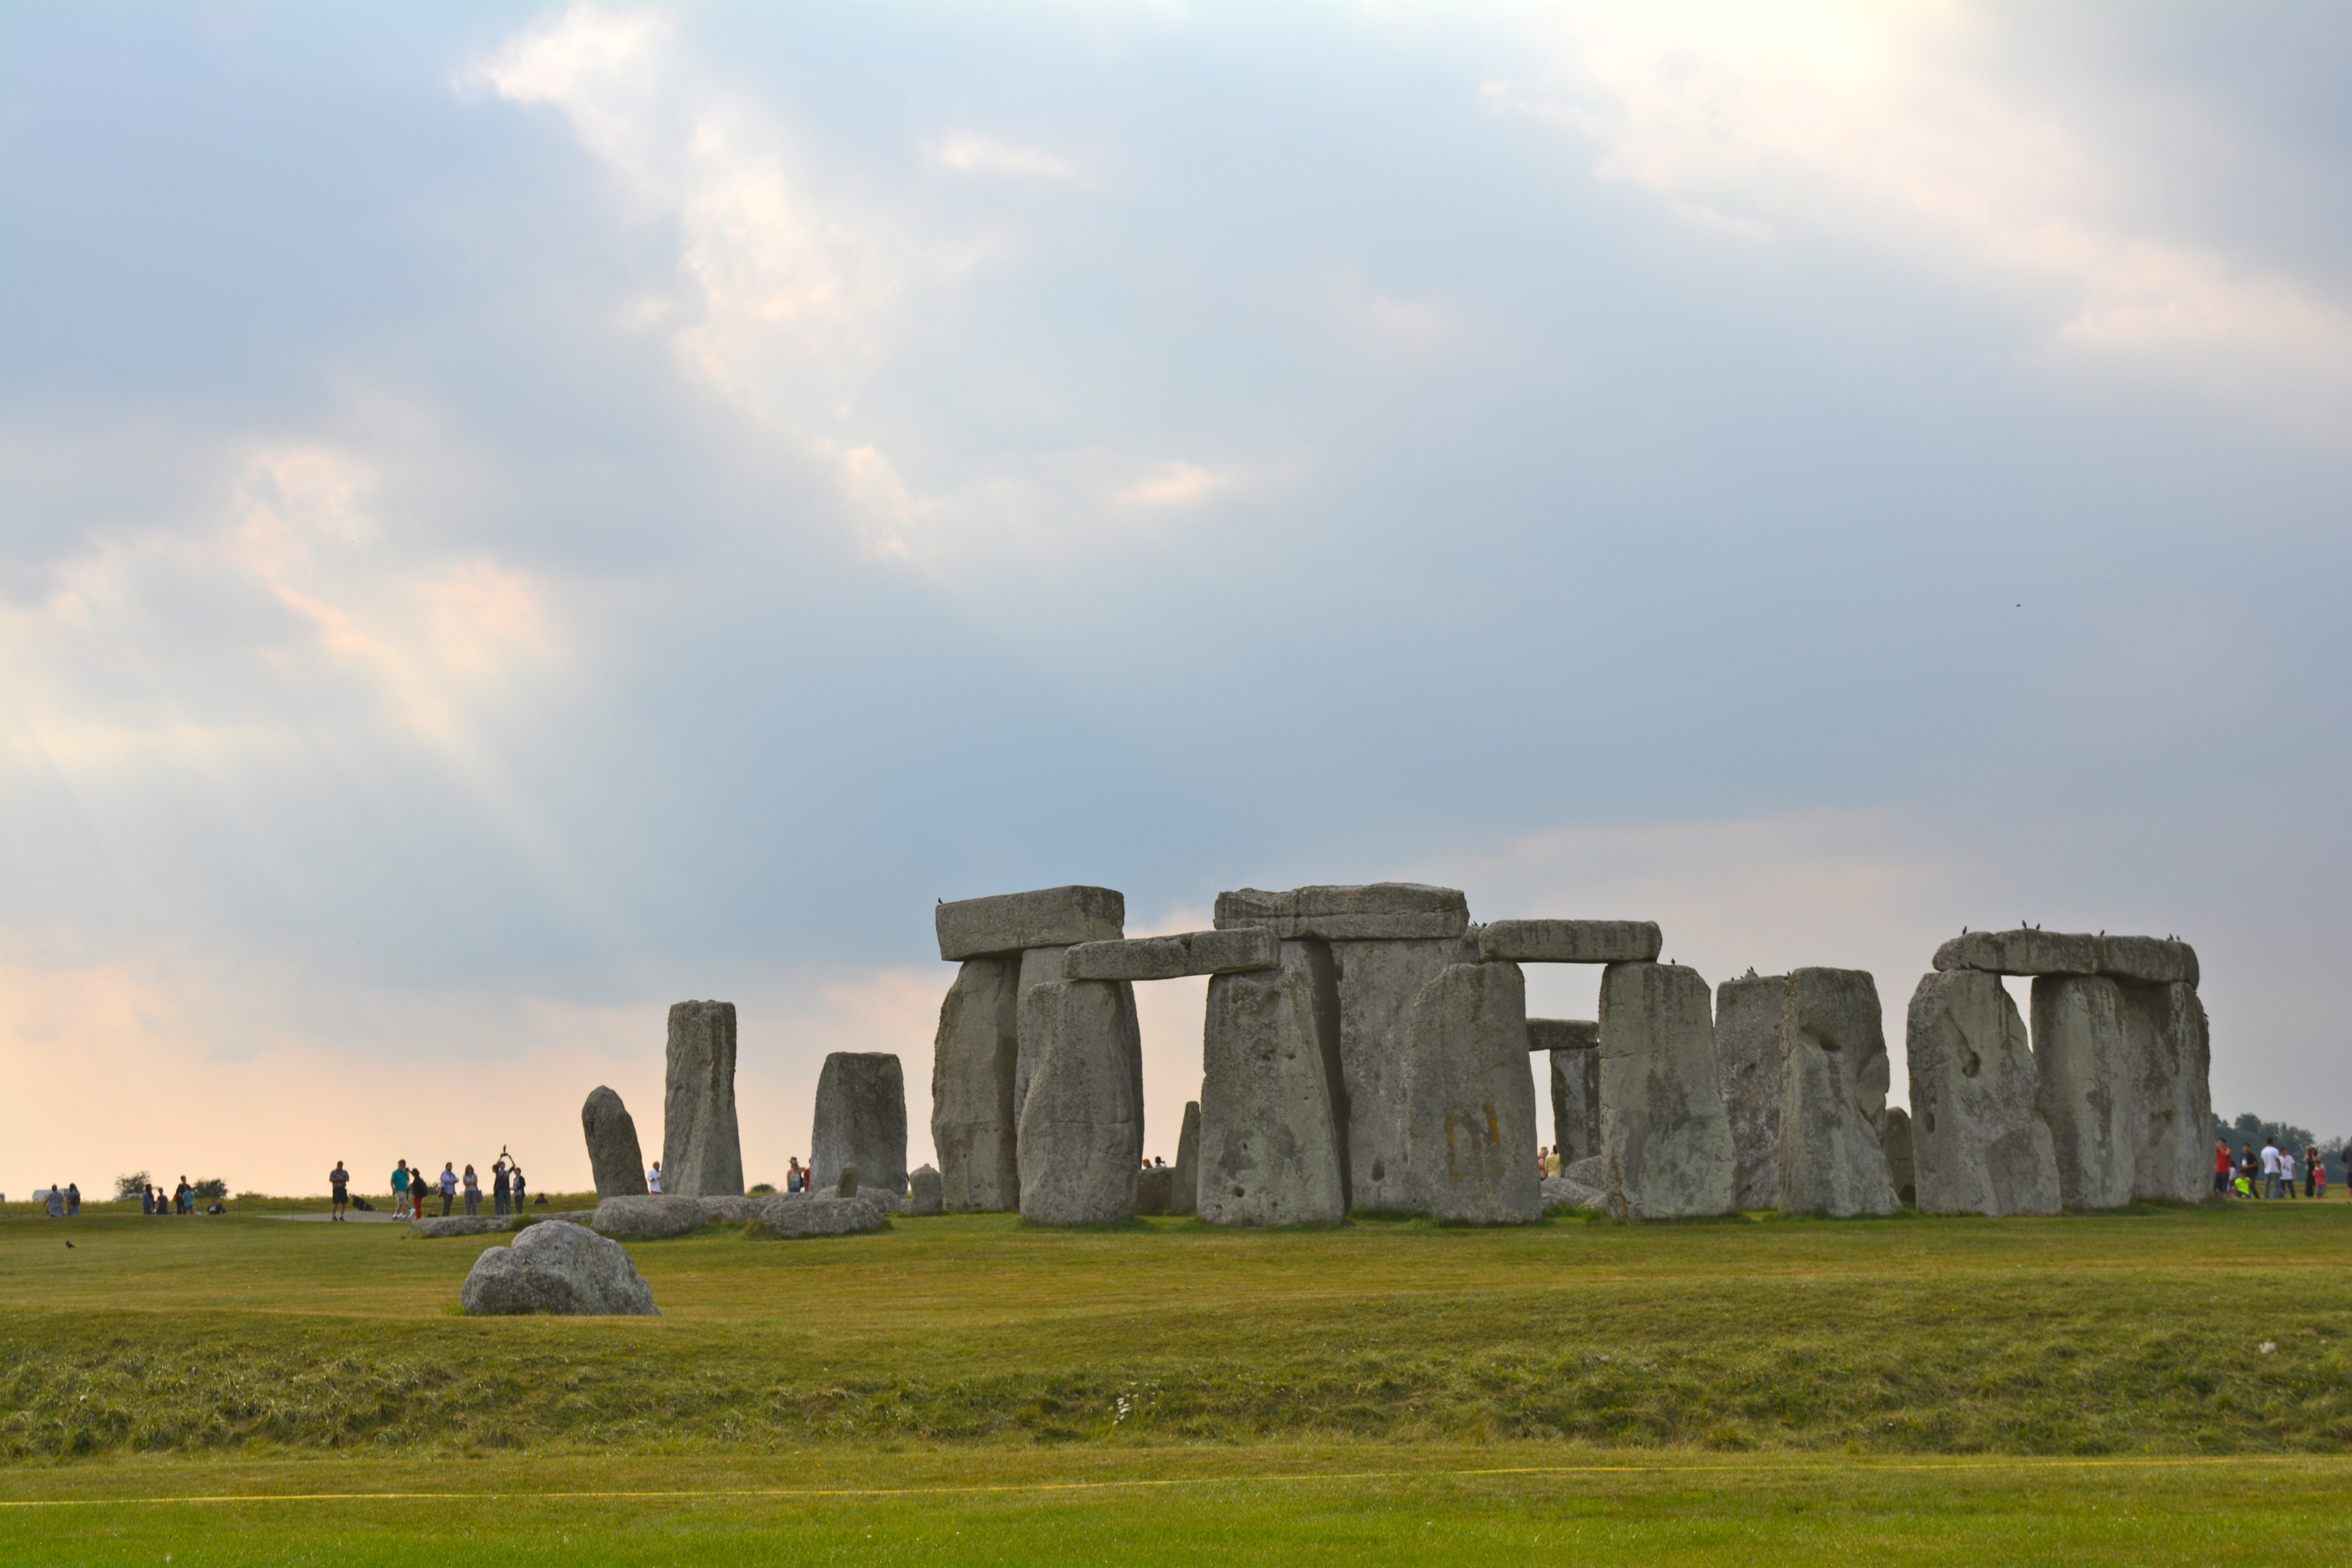 FileA View Of Stonehenge From The East